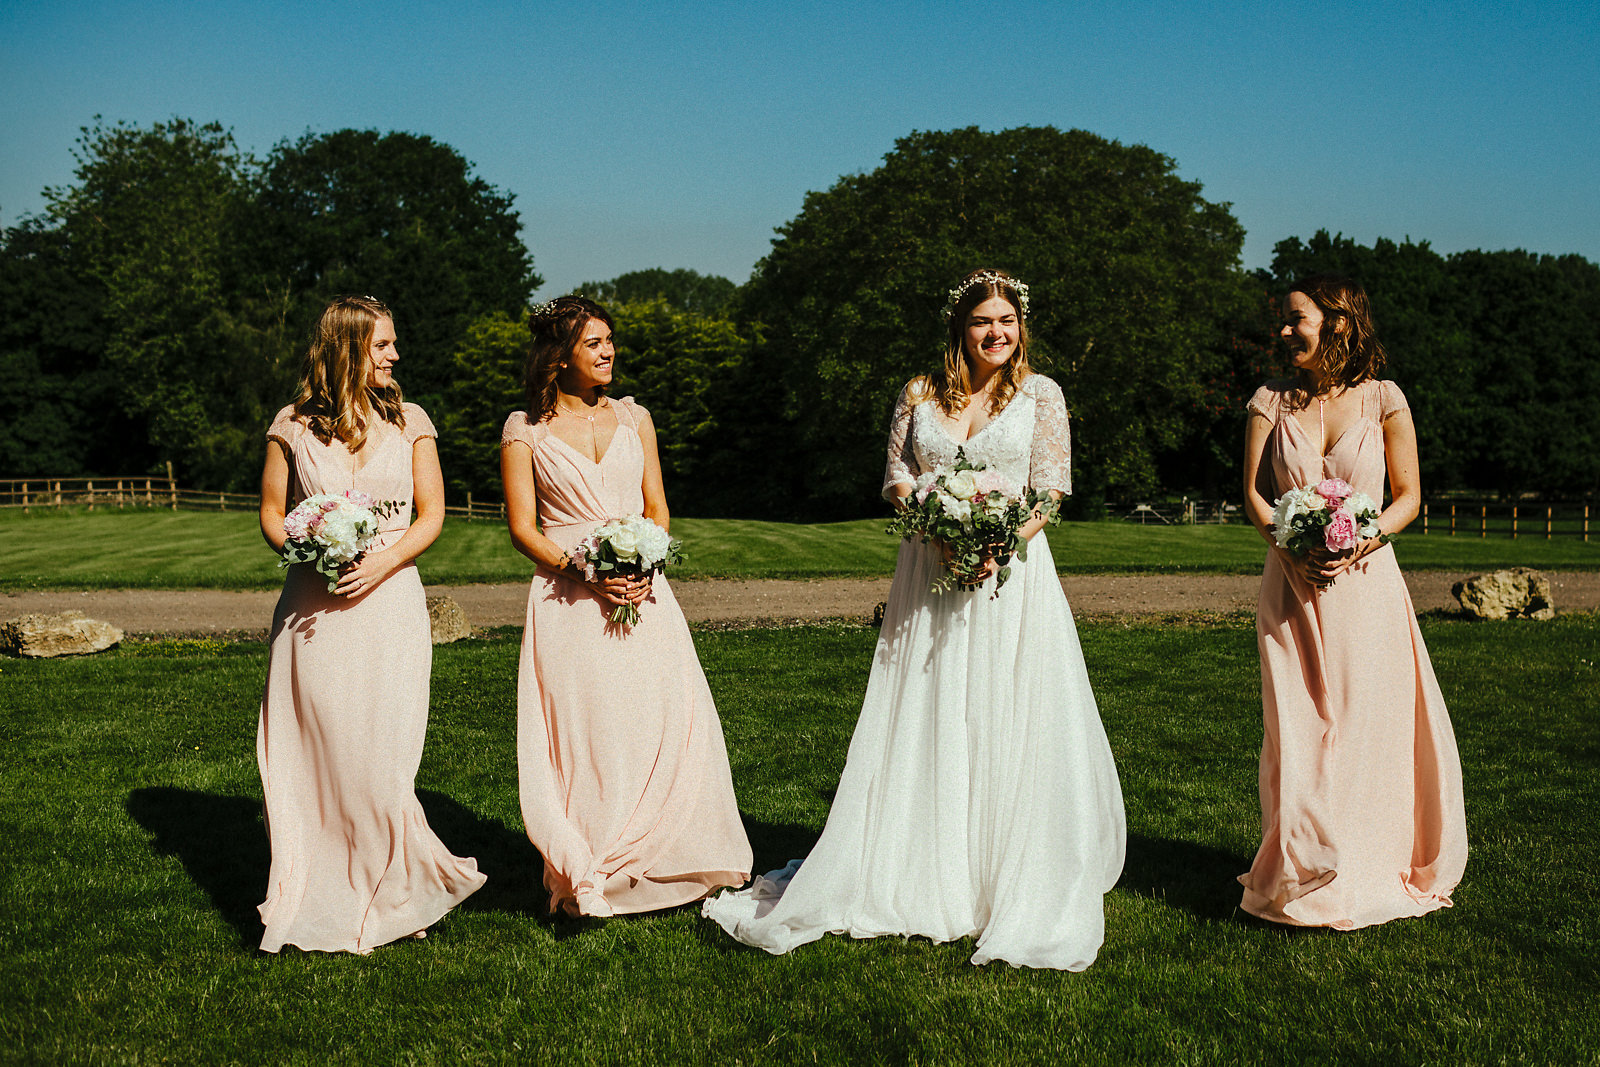 Bridesmaid group photo